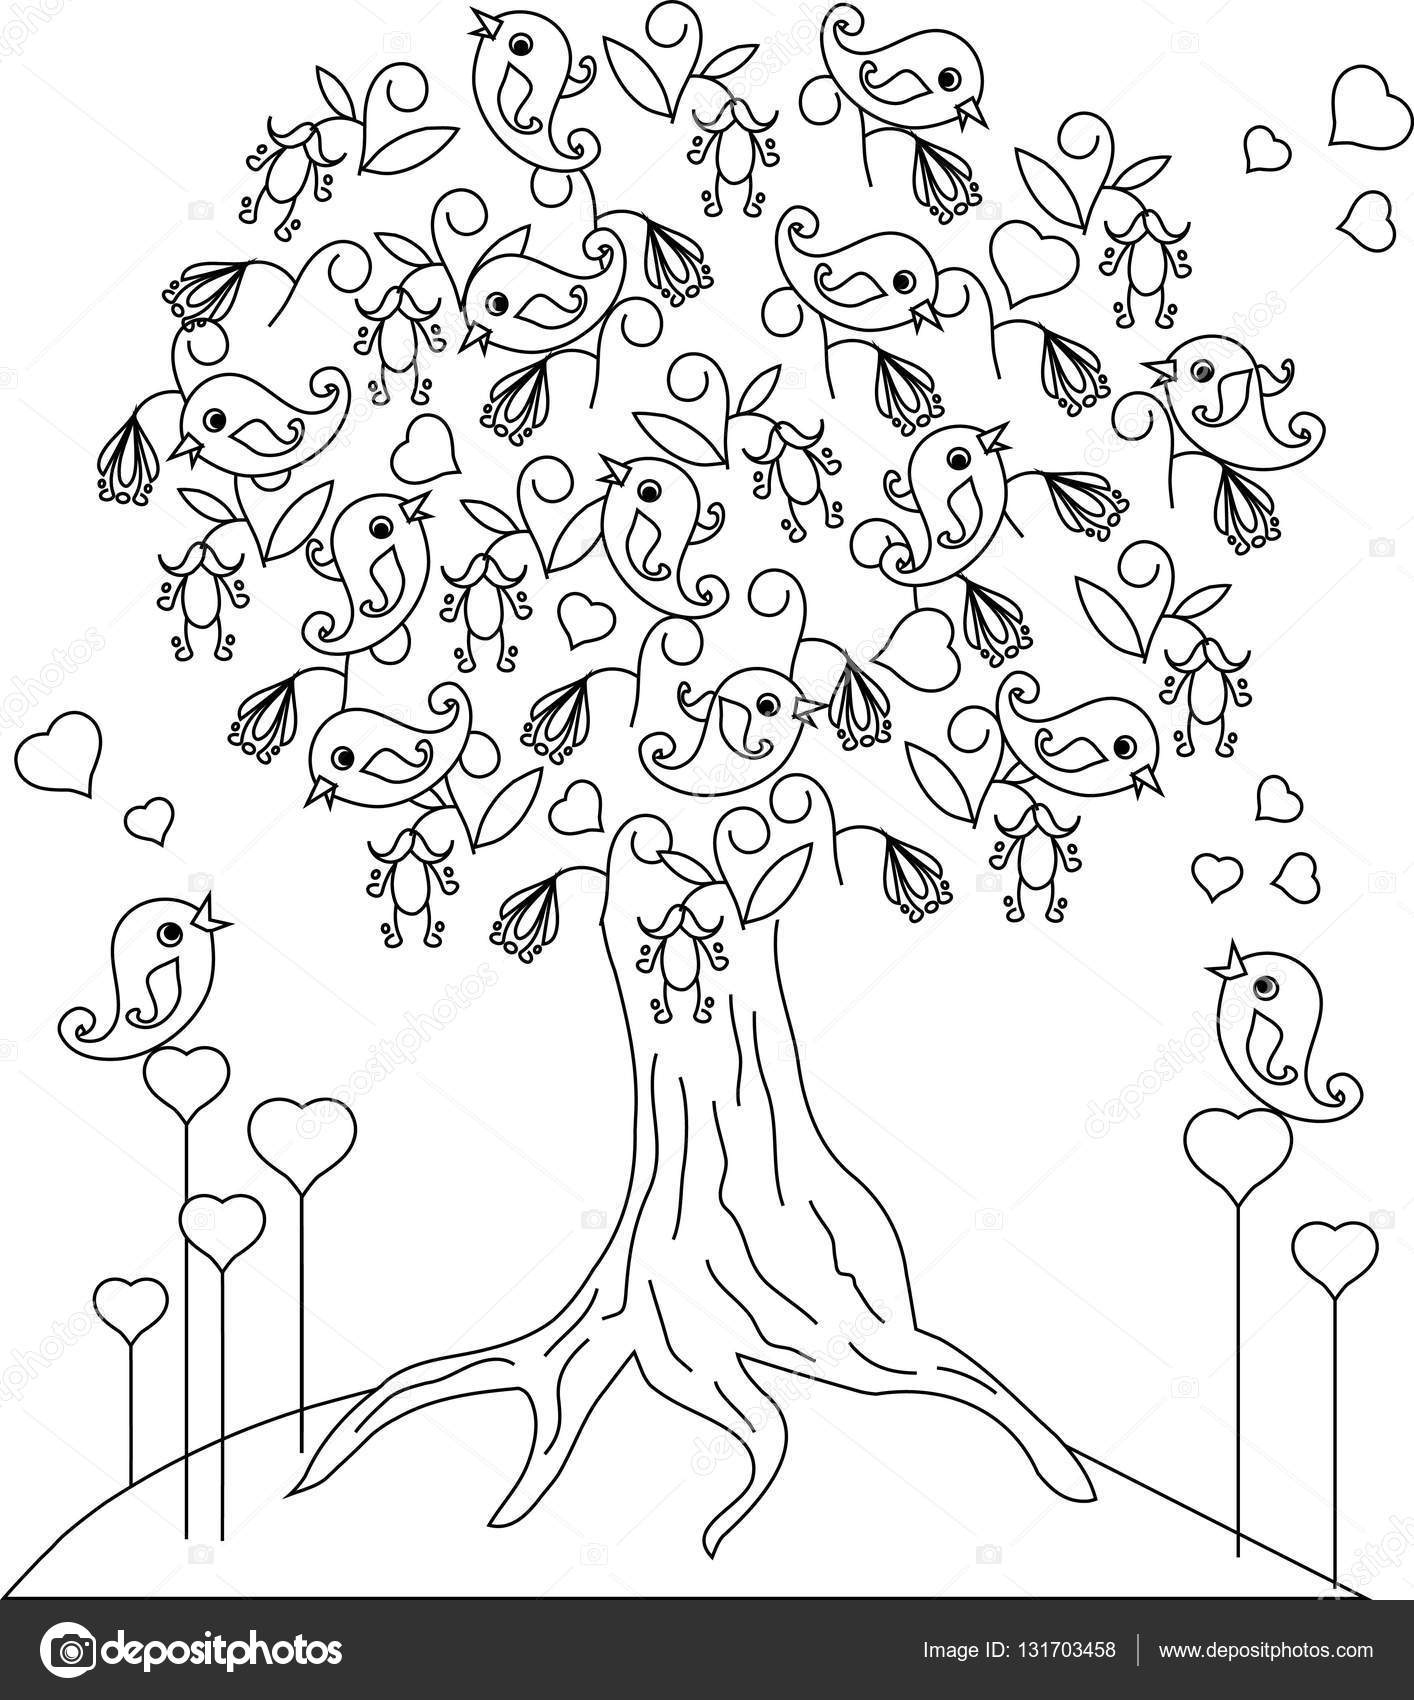 Coloriage Arbre Anti Stress.Oiseau Affectueux Blamer Arbre Hearts Anti Stress Illustration